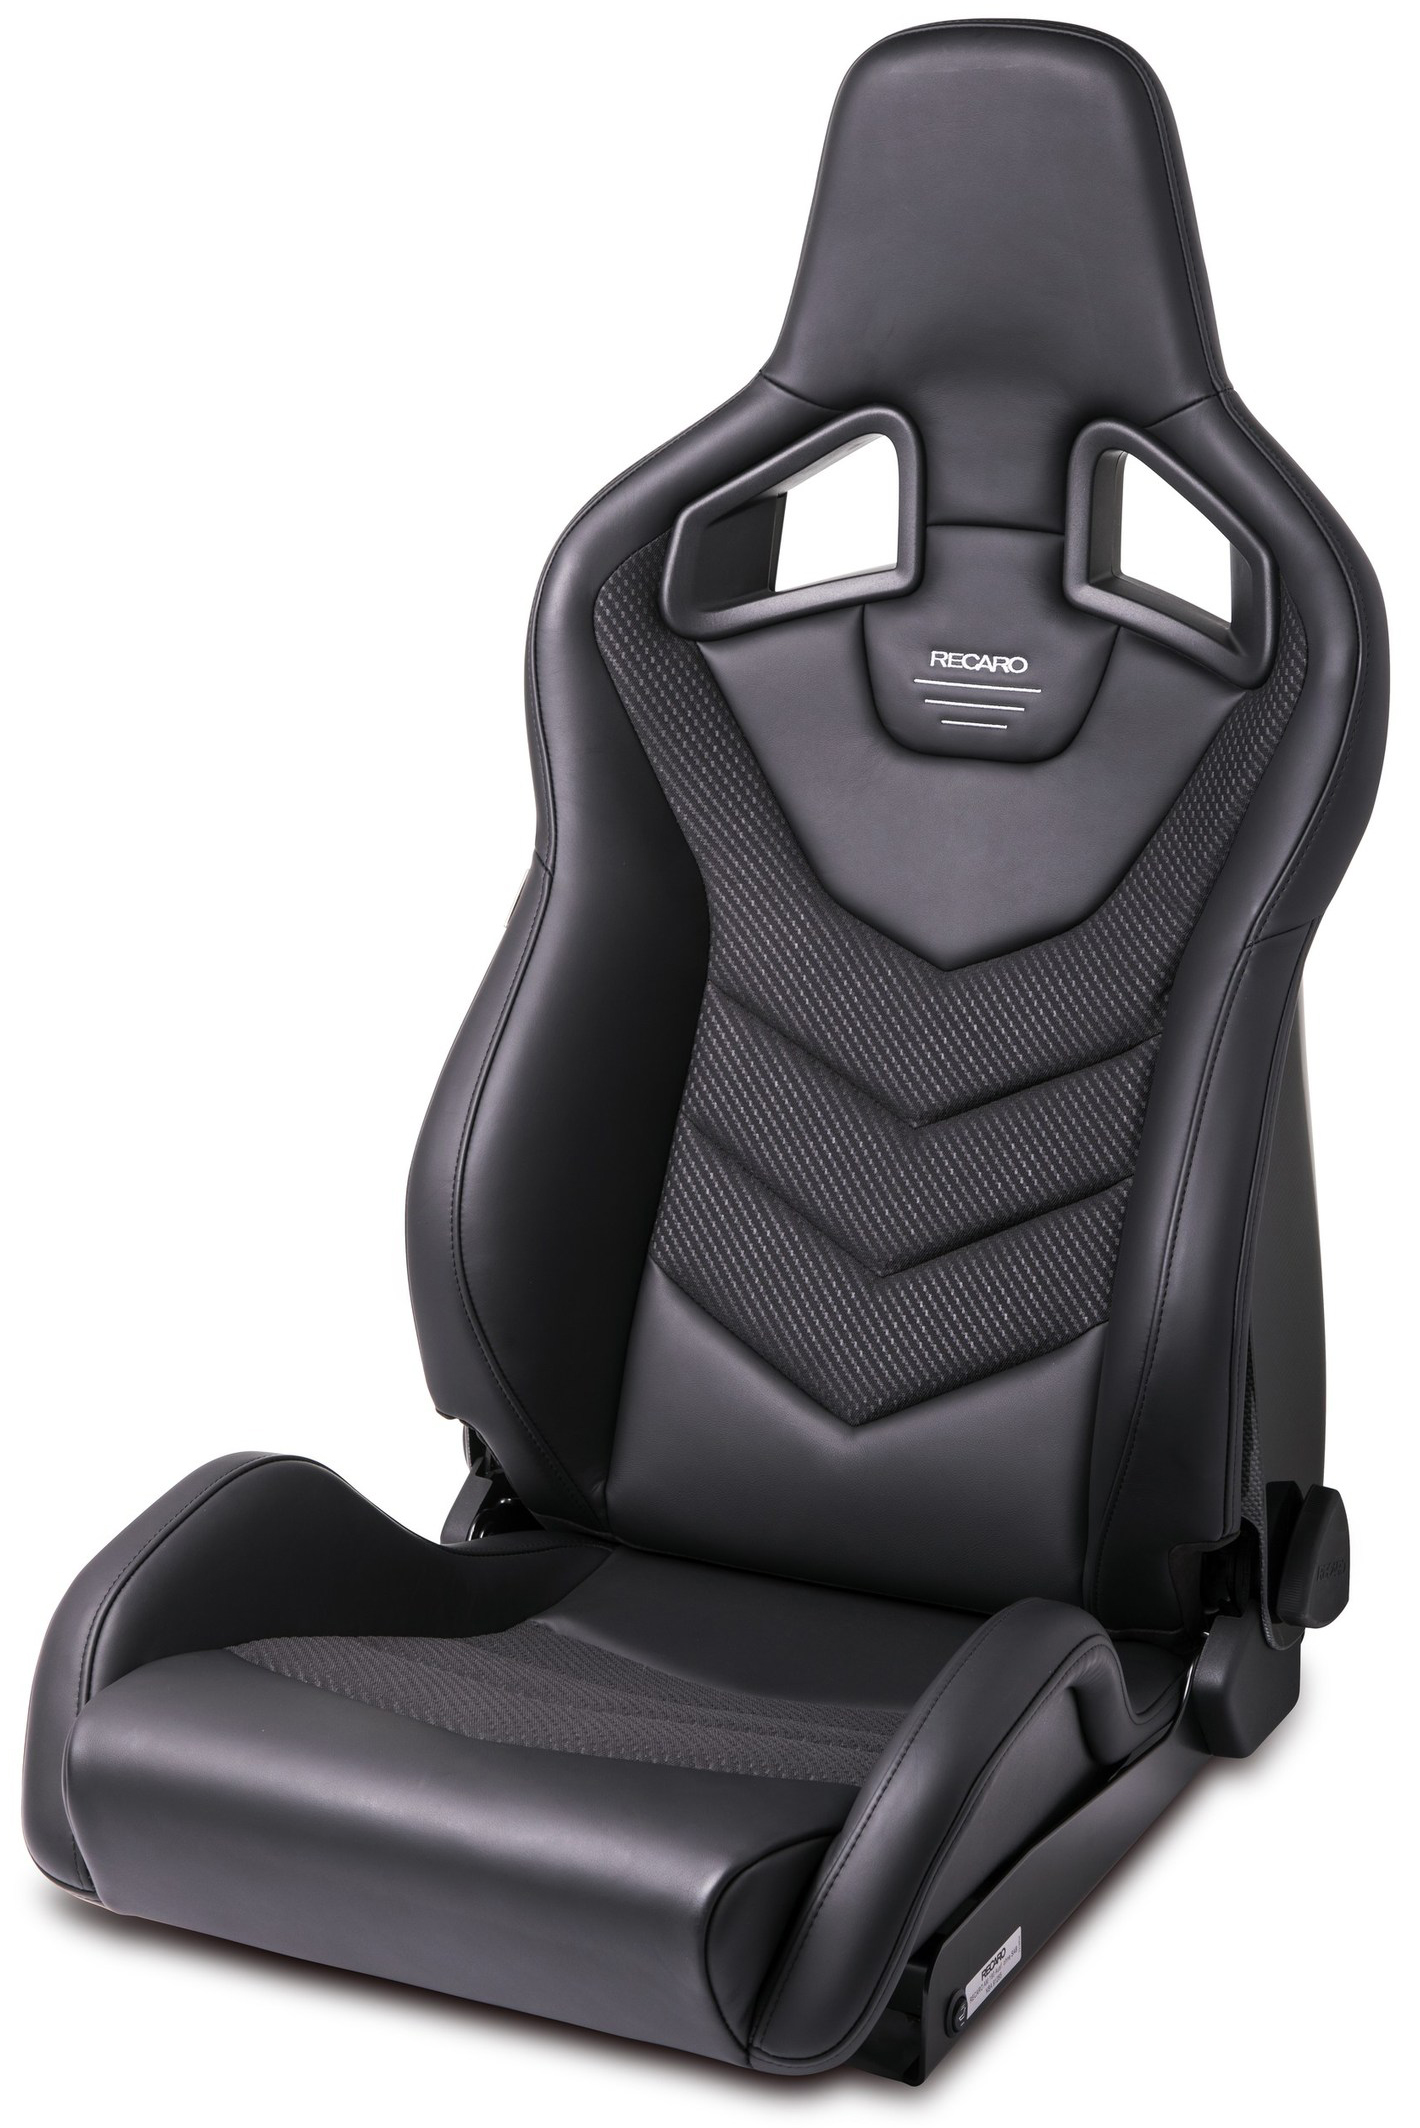 Car Seat Recaro >> Recaro Automotive Seating - the Latest in Aftermarket Seating Technology